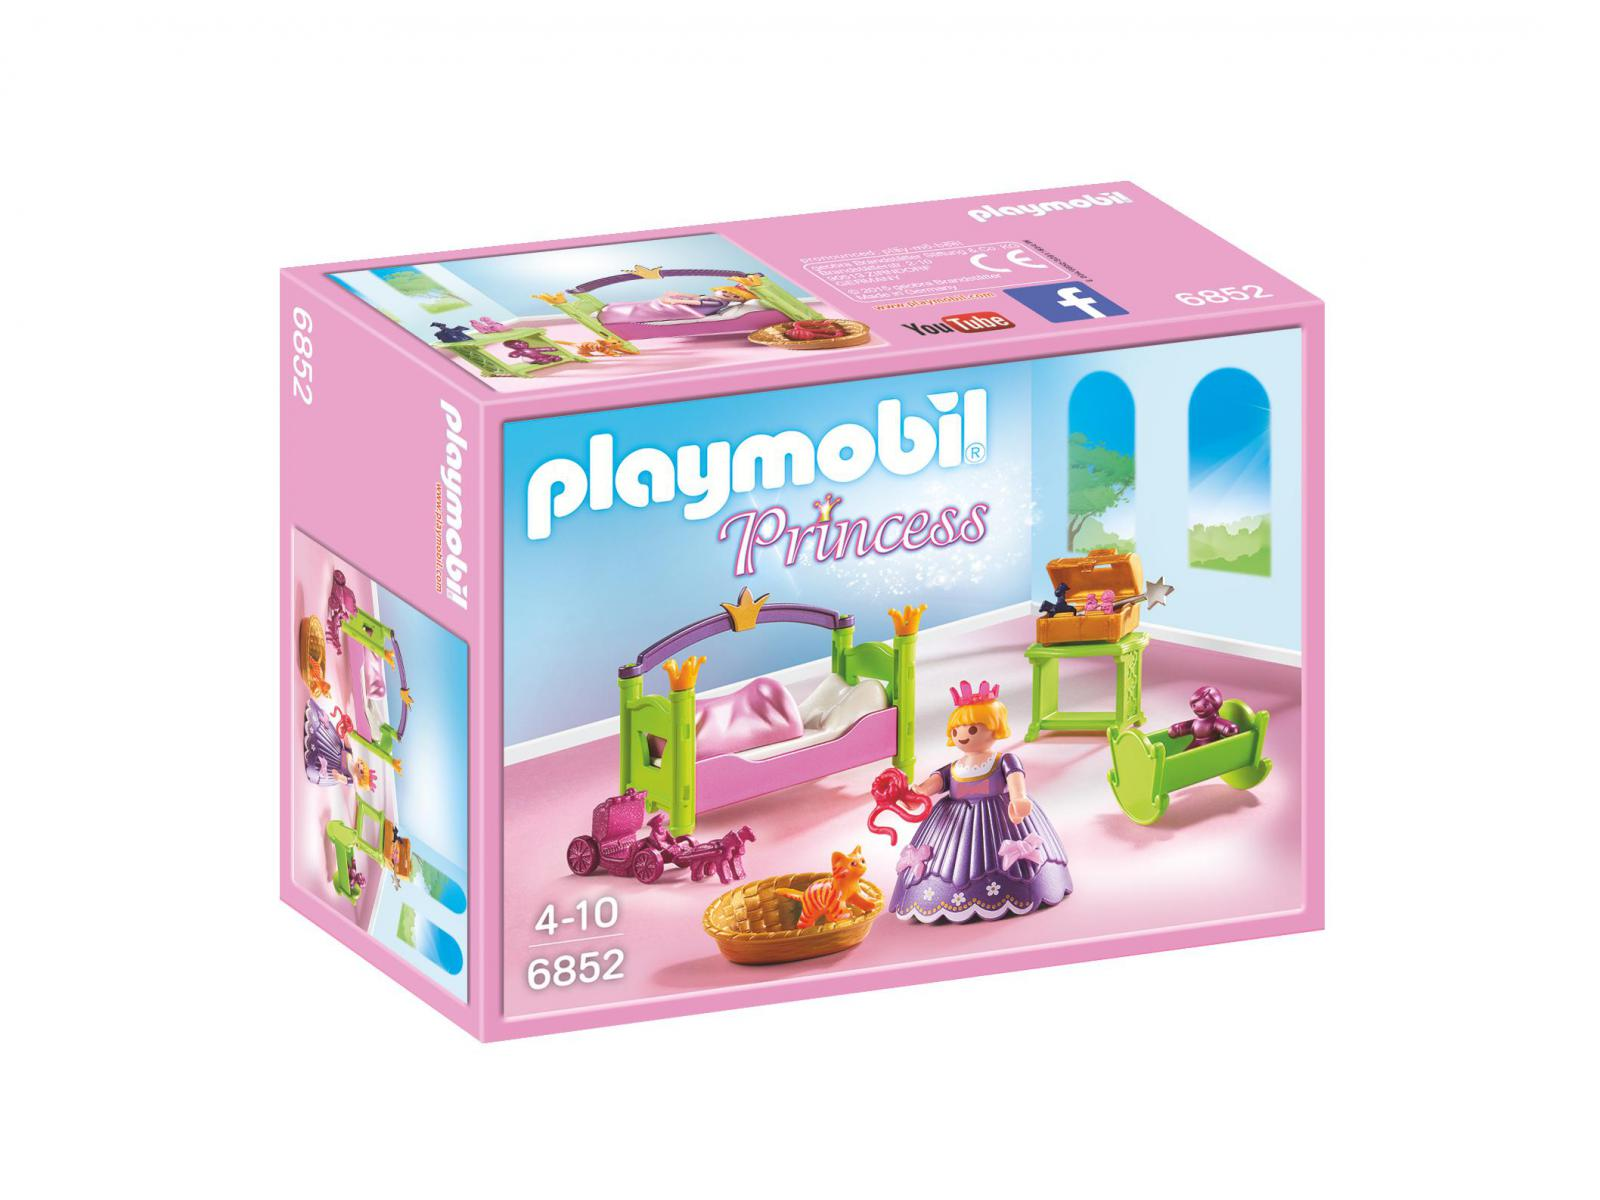 Playmobil chambre de princesse for Playmobil chambre princesse